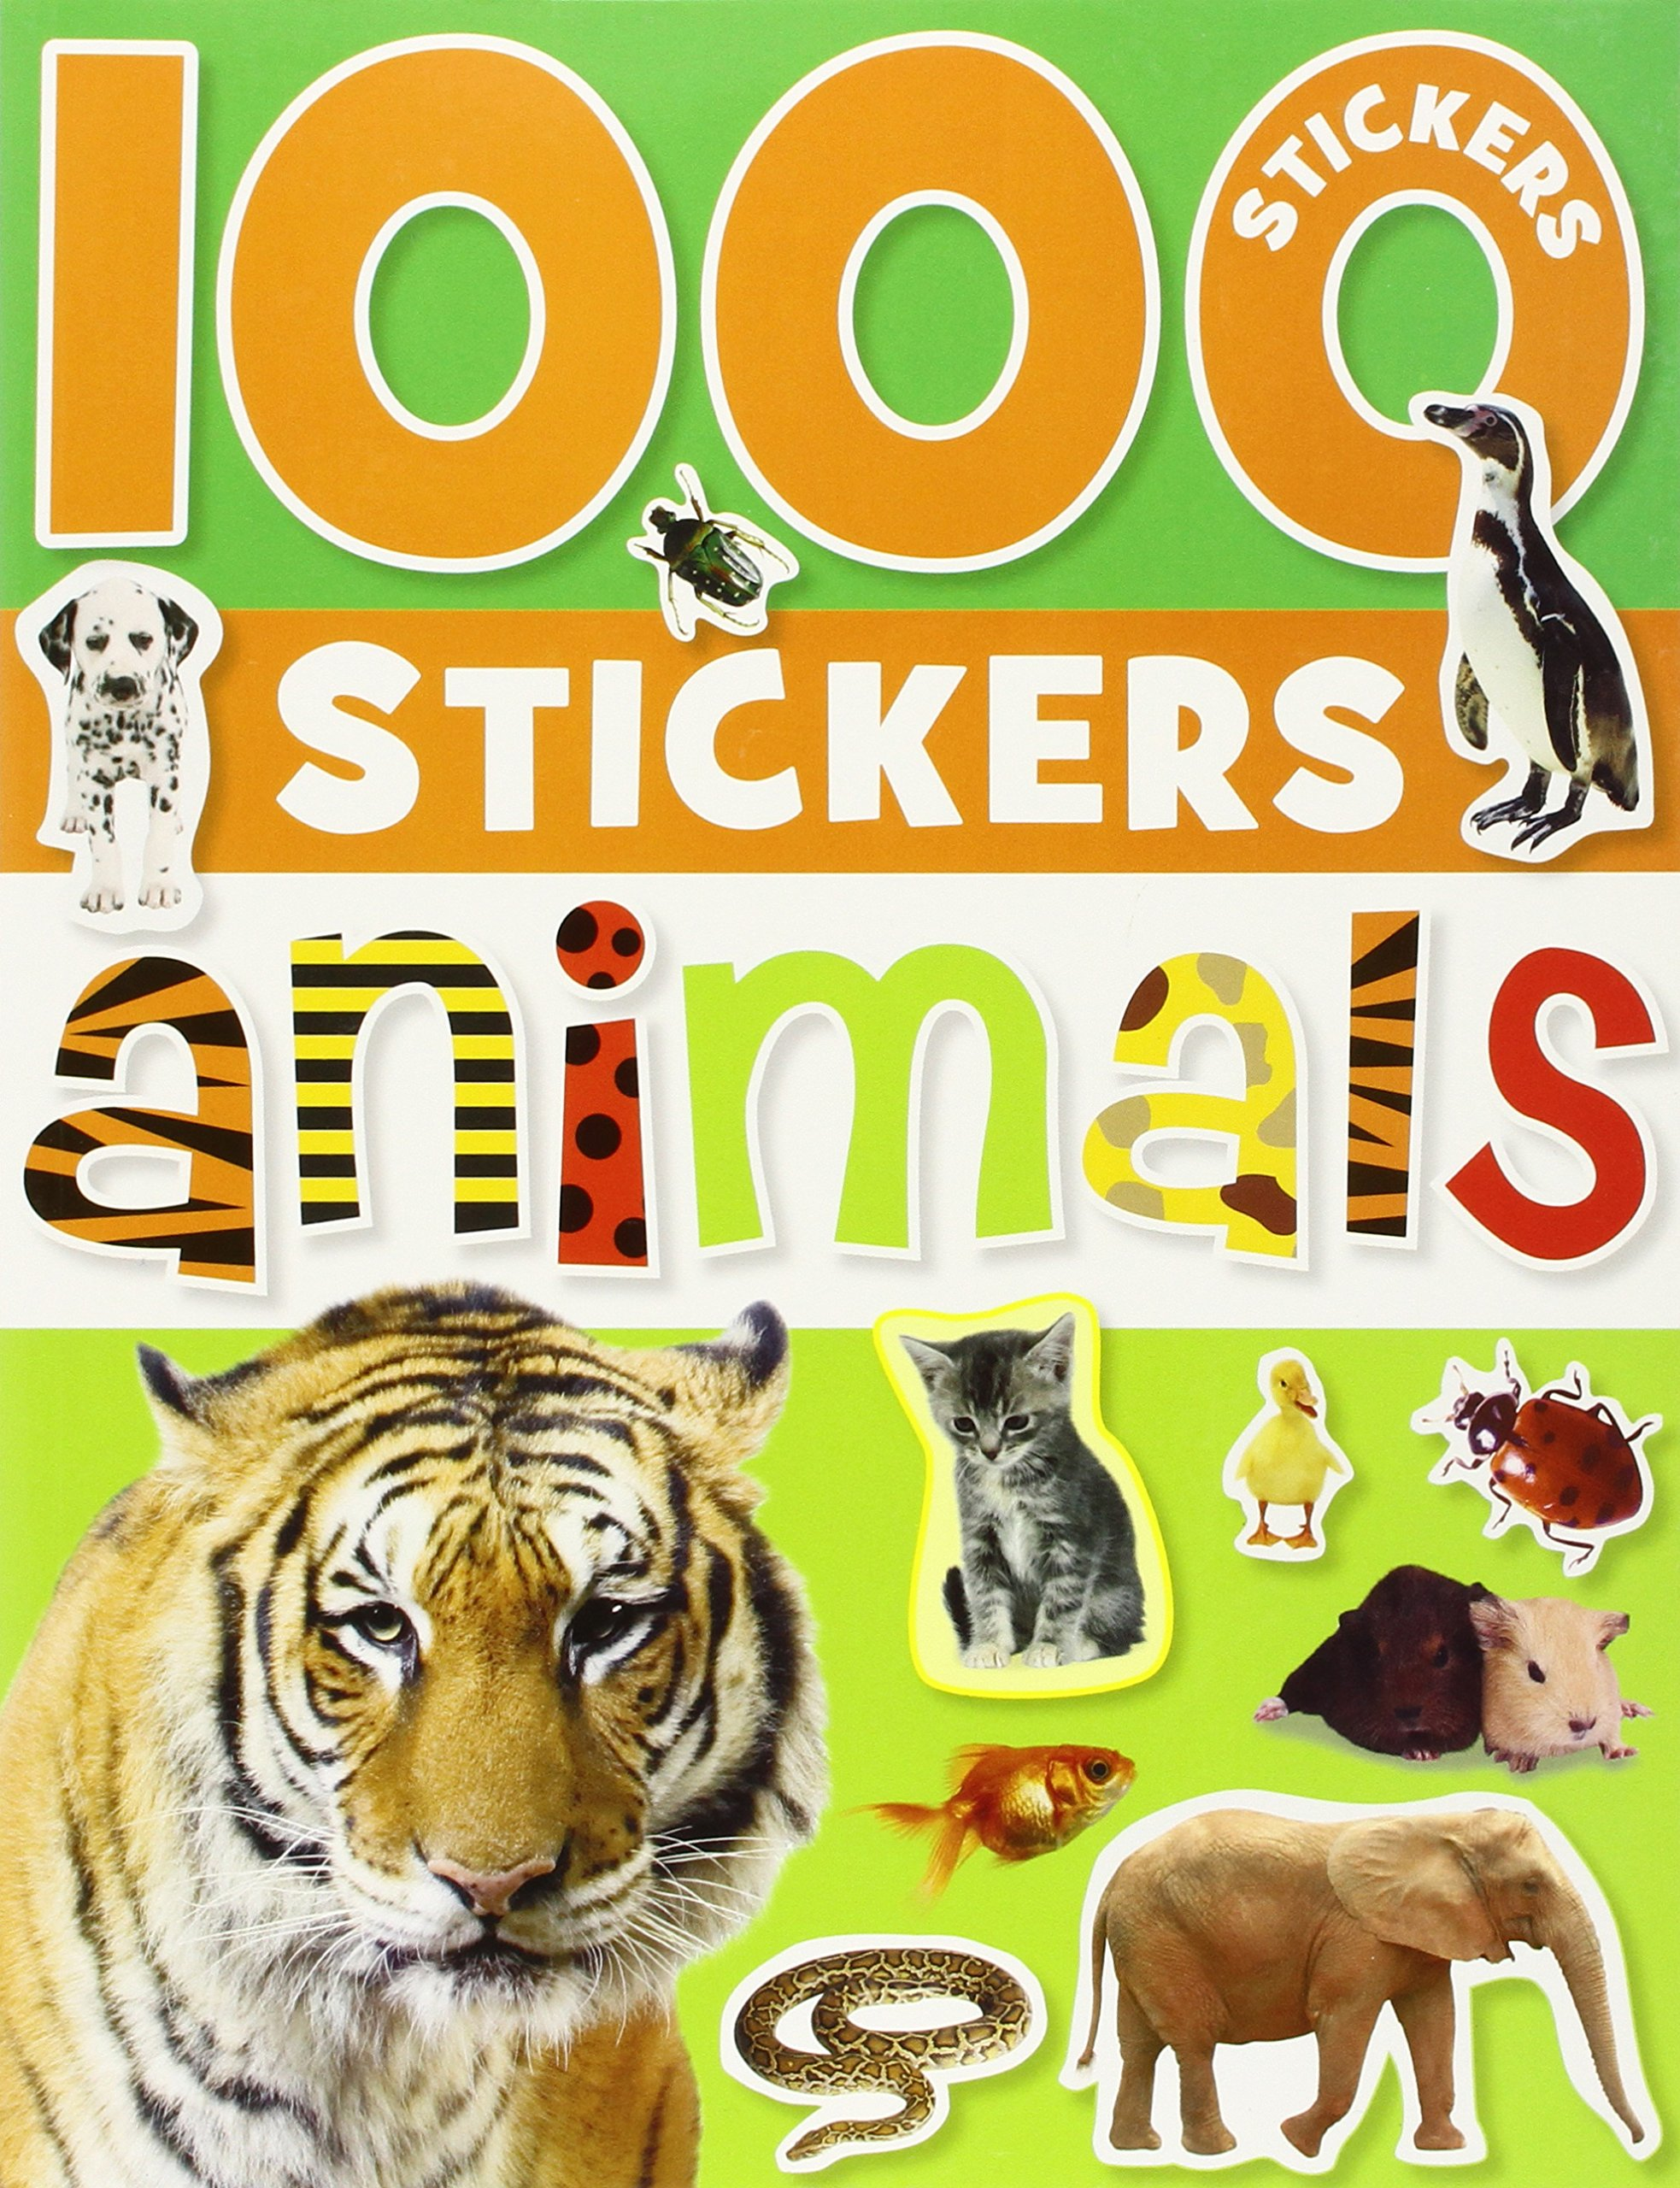 1000 Stickers Make Believe Ideas product image